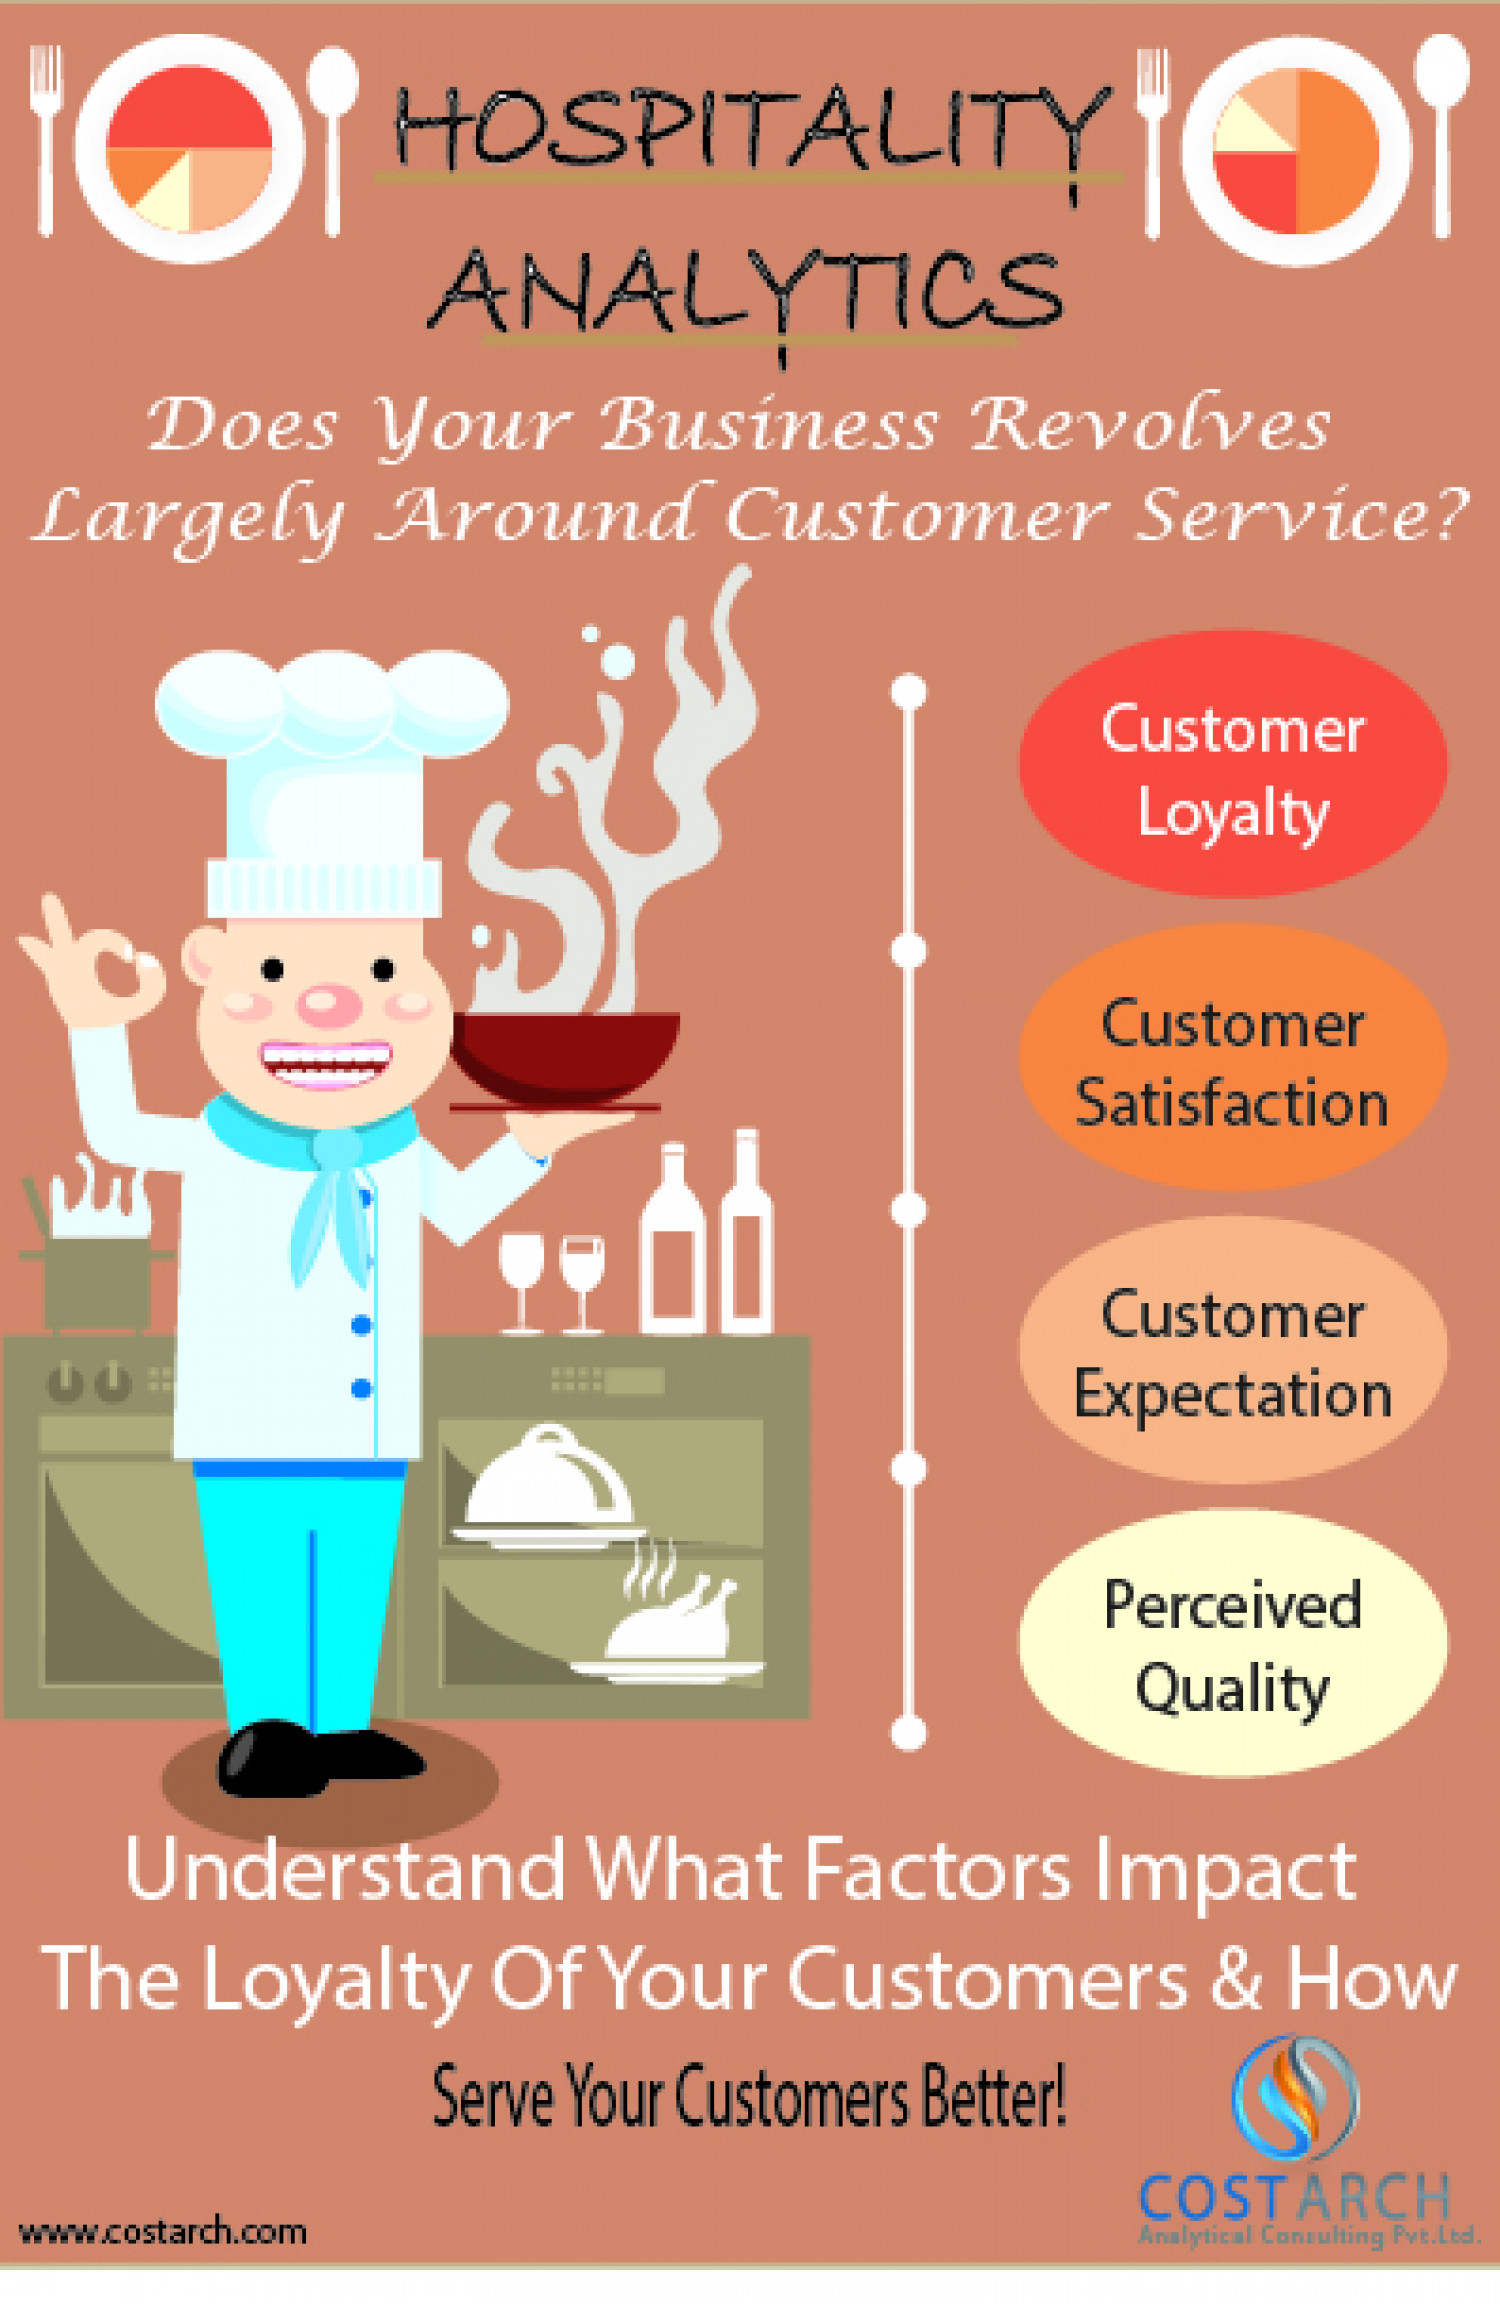 Hospitality Analytics Infographic